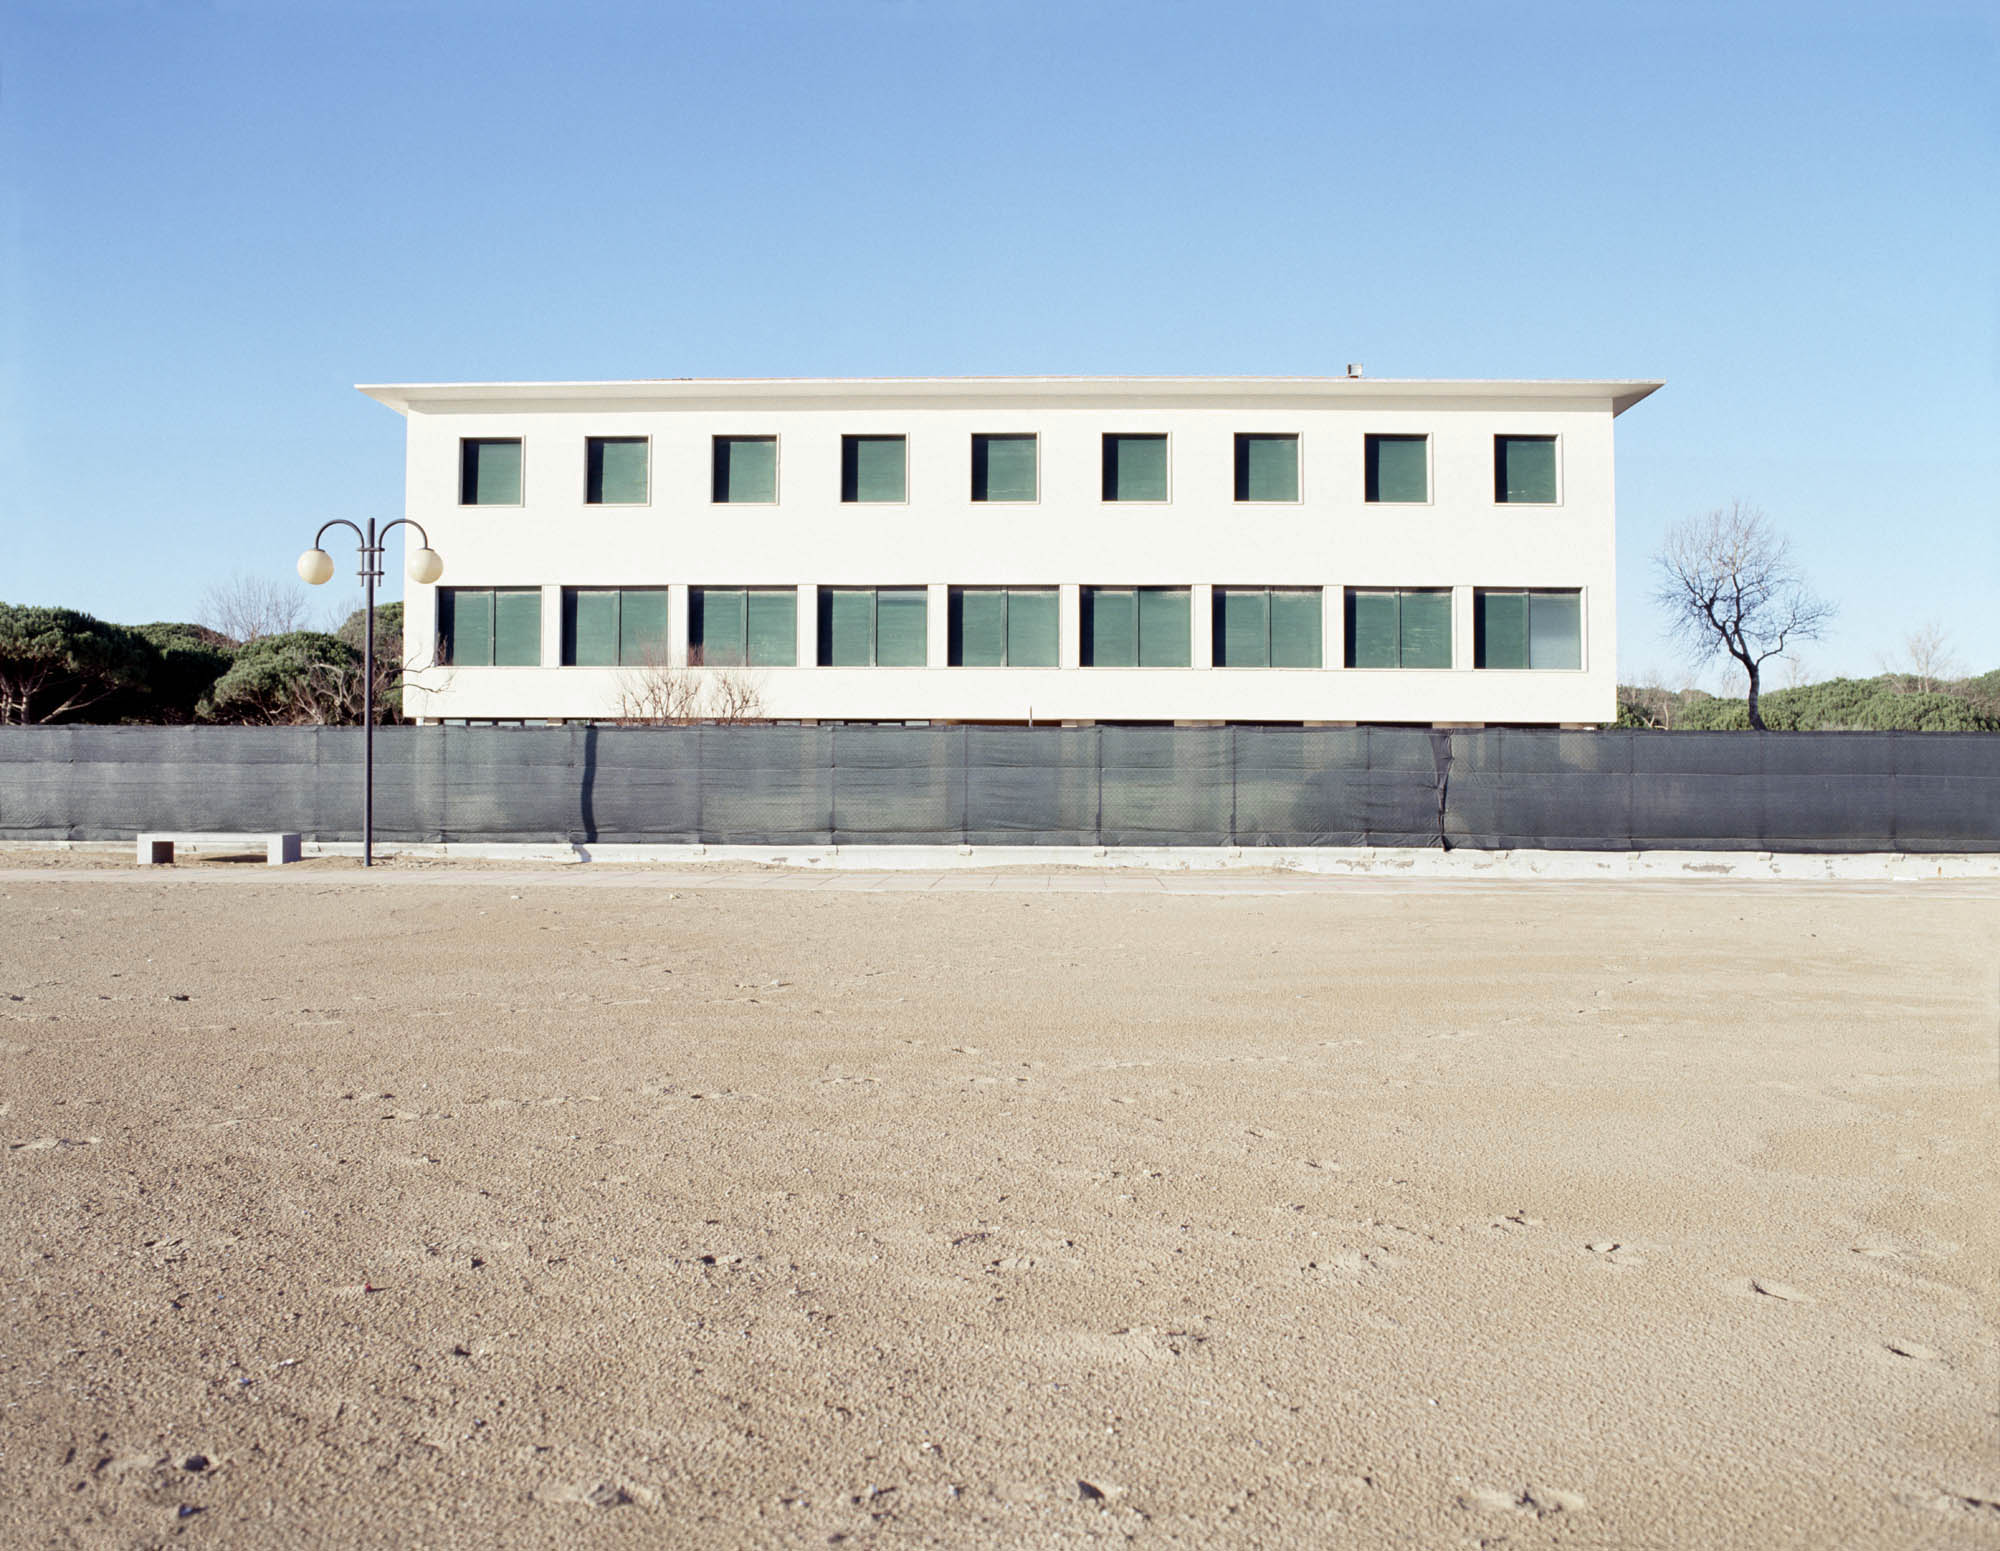 'Seaside Holiday camp, Jesolo', Archival pigment print